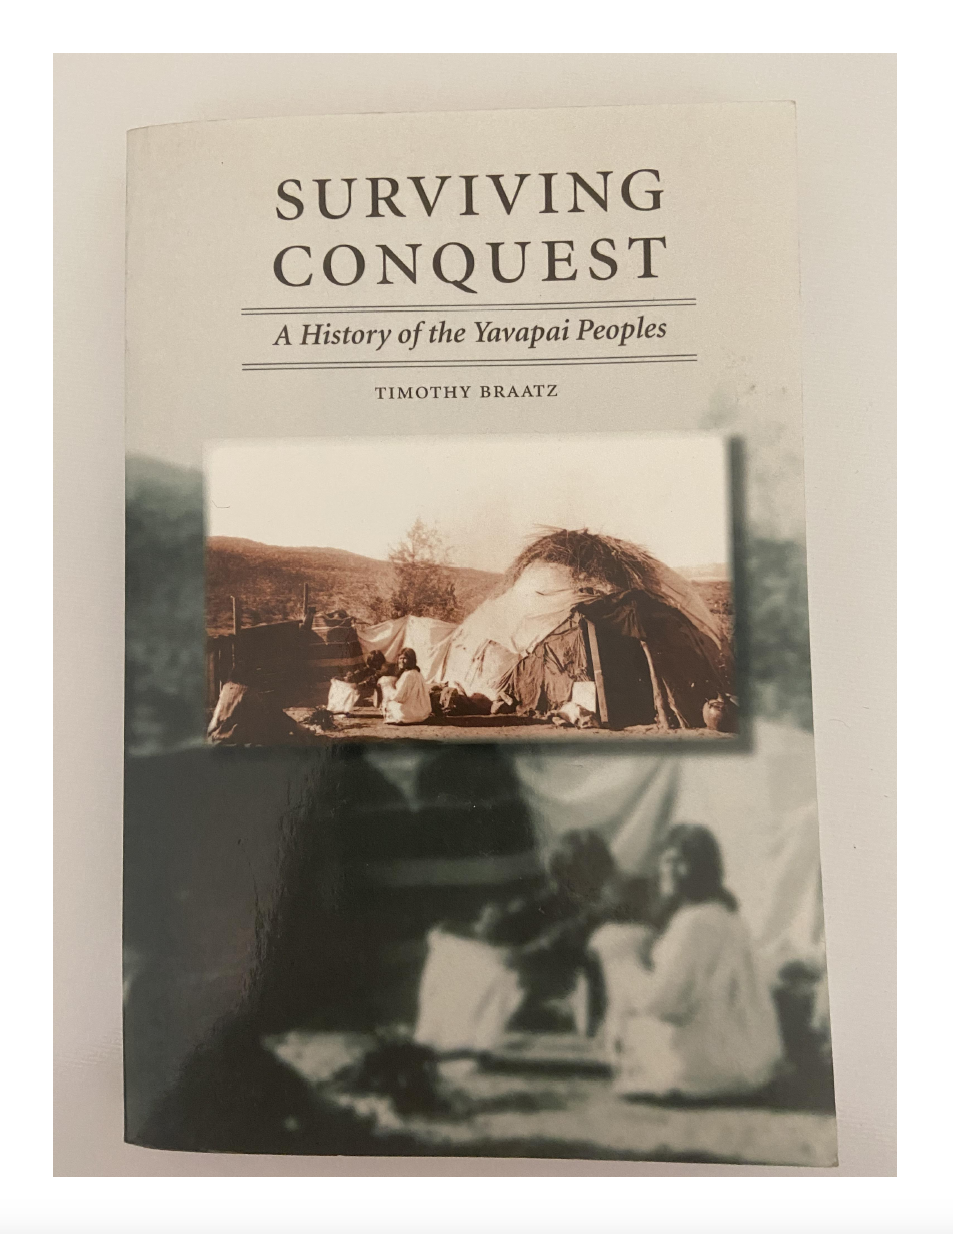 Thumbnail image of document cover: Surviving Conquest: a History of the Yavapai Peoples